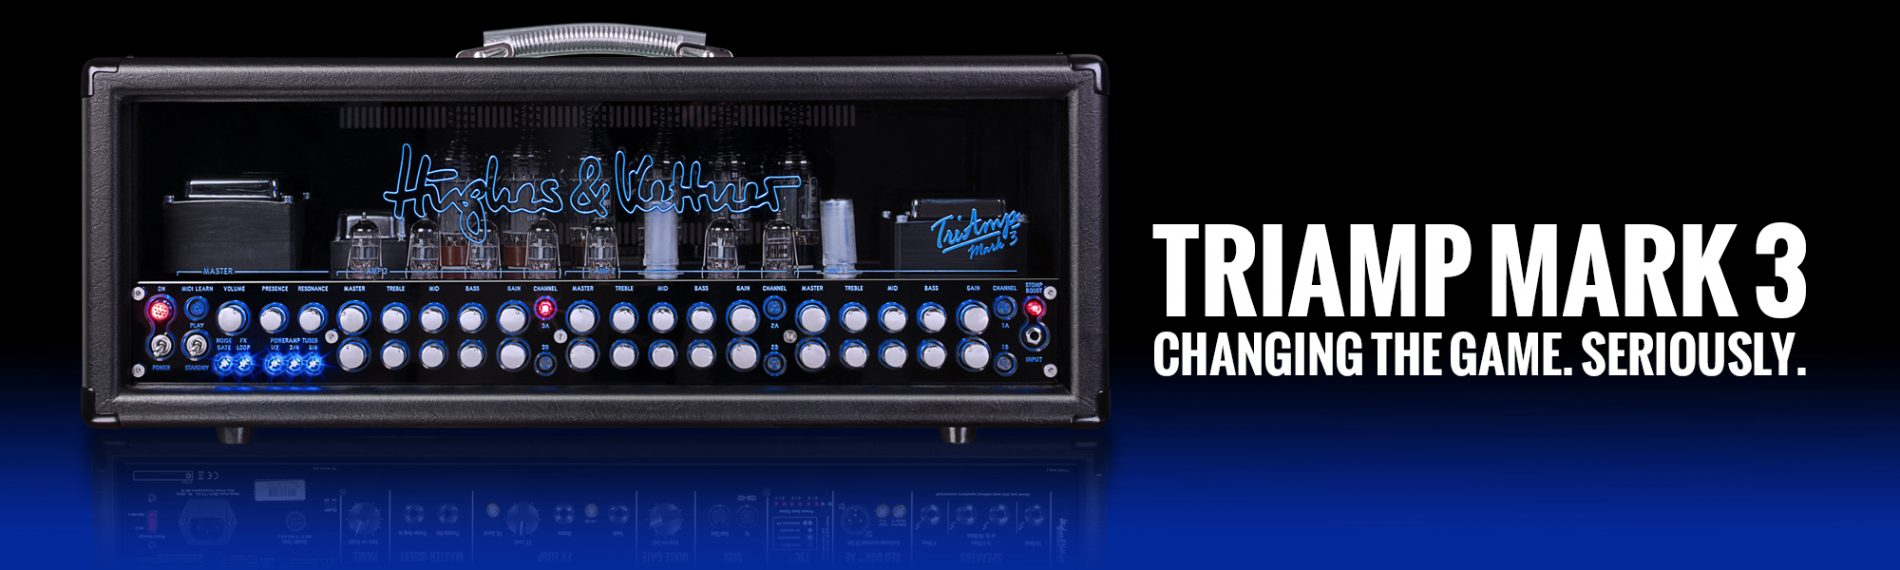 Hughes Kettner Channel Master Wiring Diagram Play Acoustic Triamp Mark 3